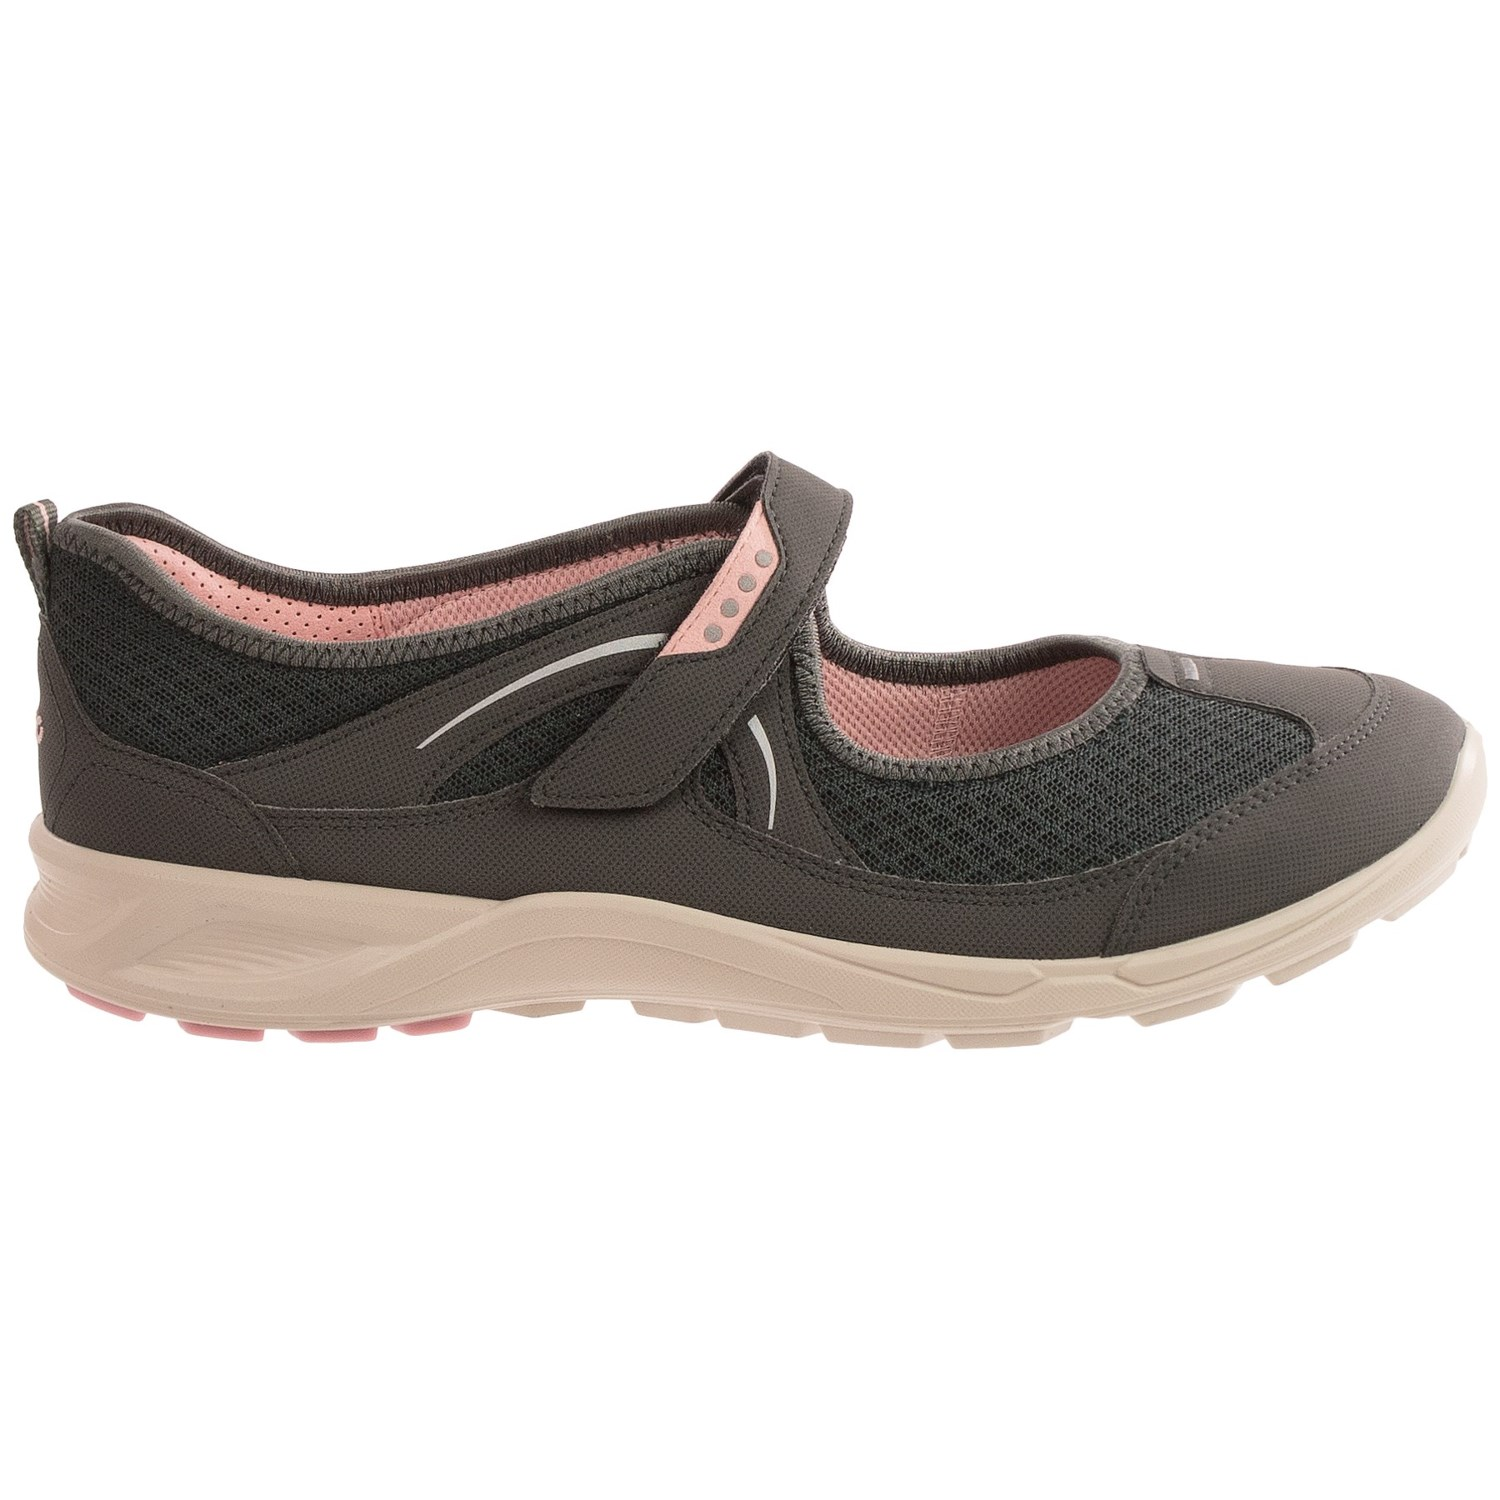 Ecco Womens Golf Shoes Review